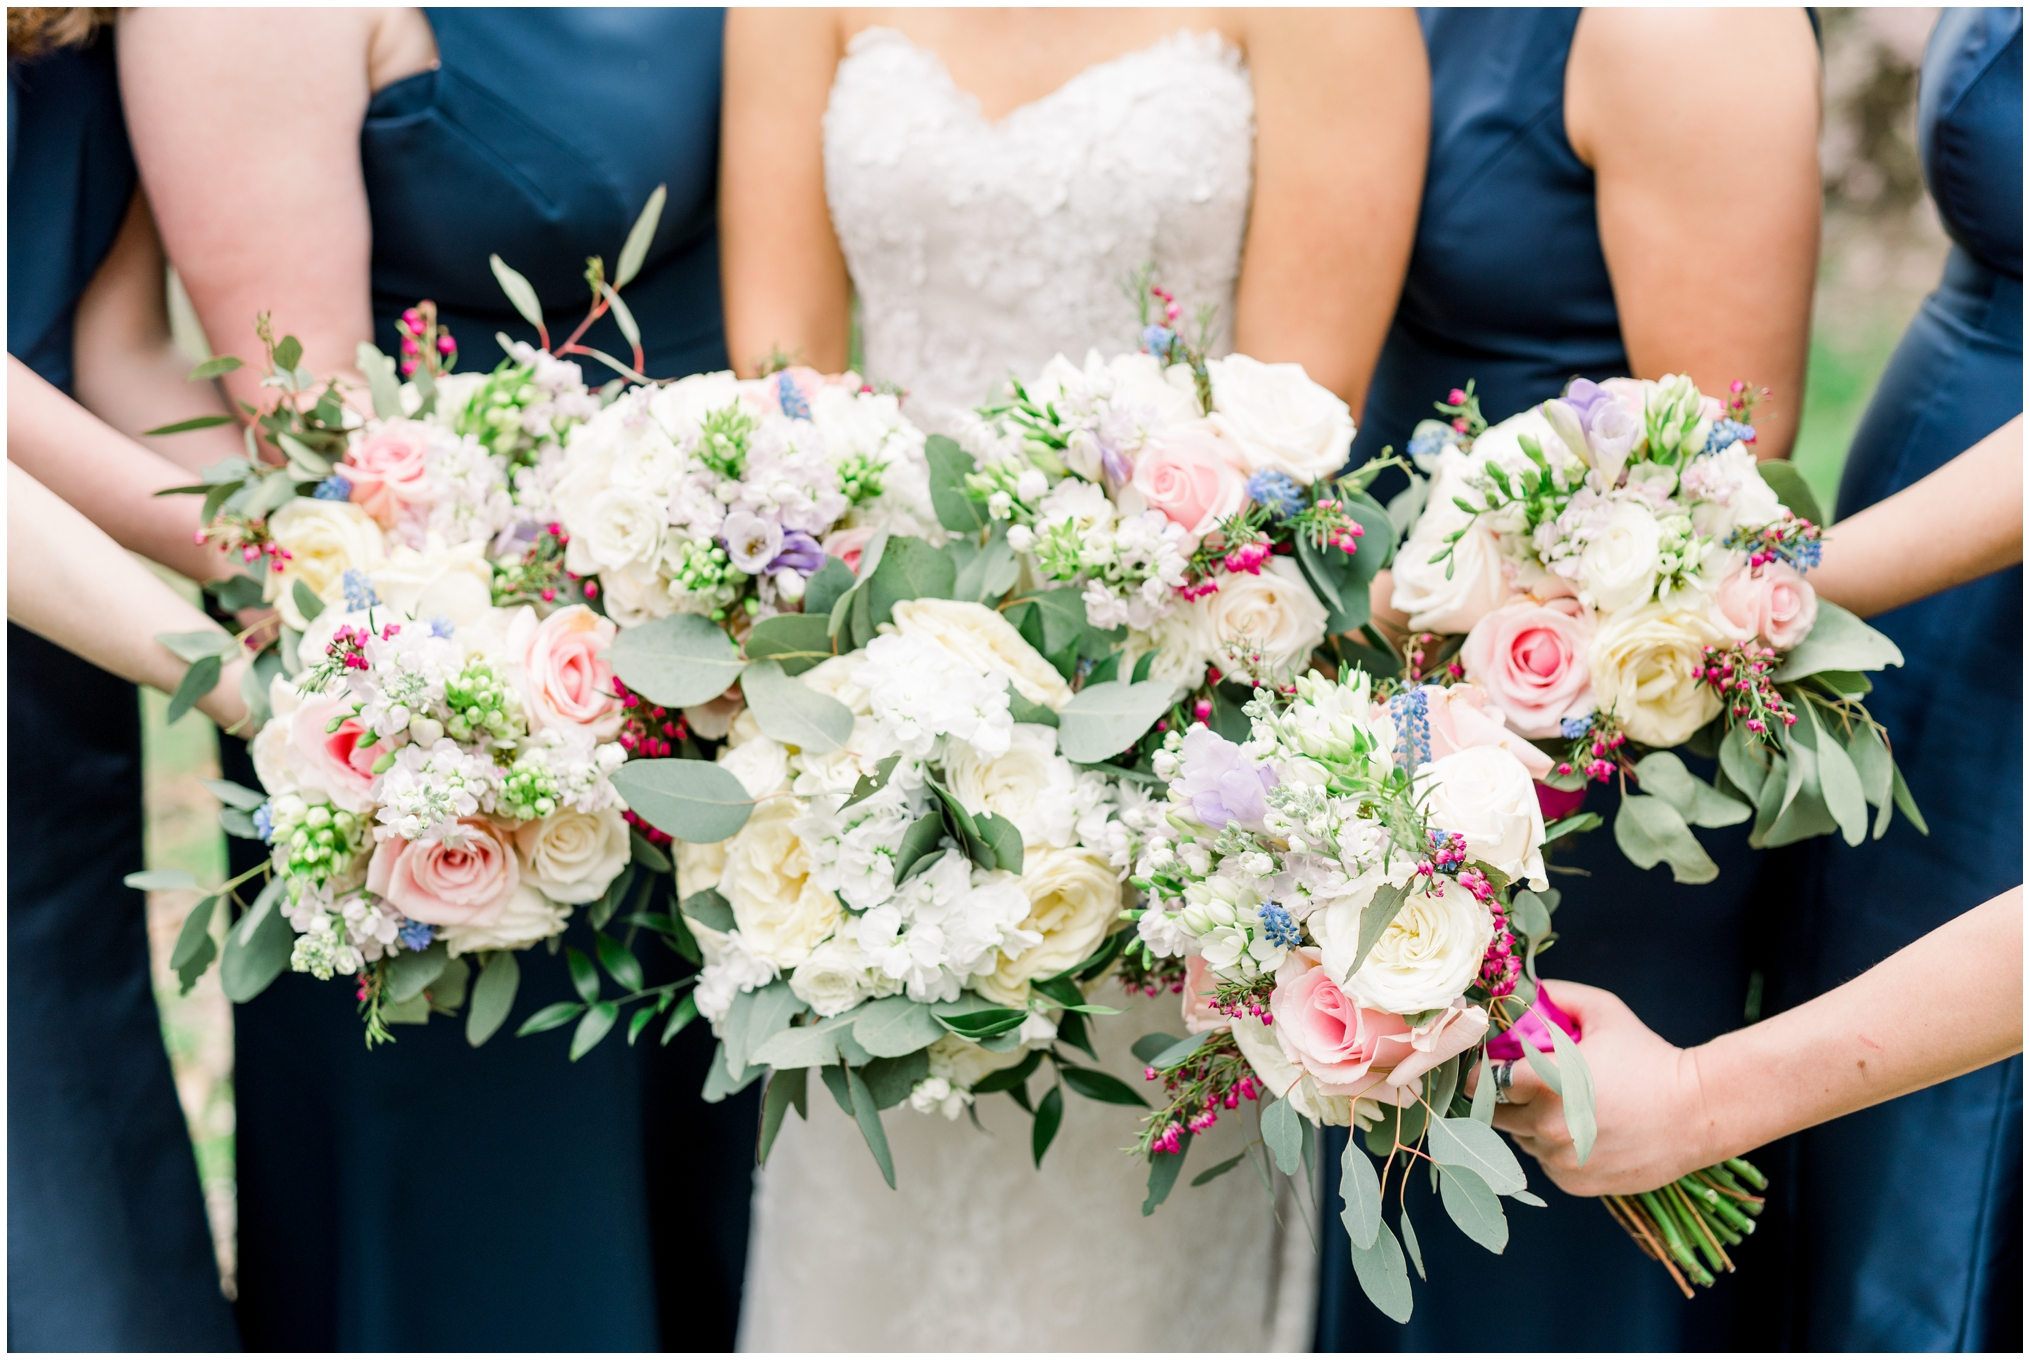 Krista Brackin Photography | April Wedding at The Carriage House at Rockwood Park_0053.jpg